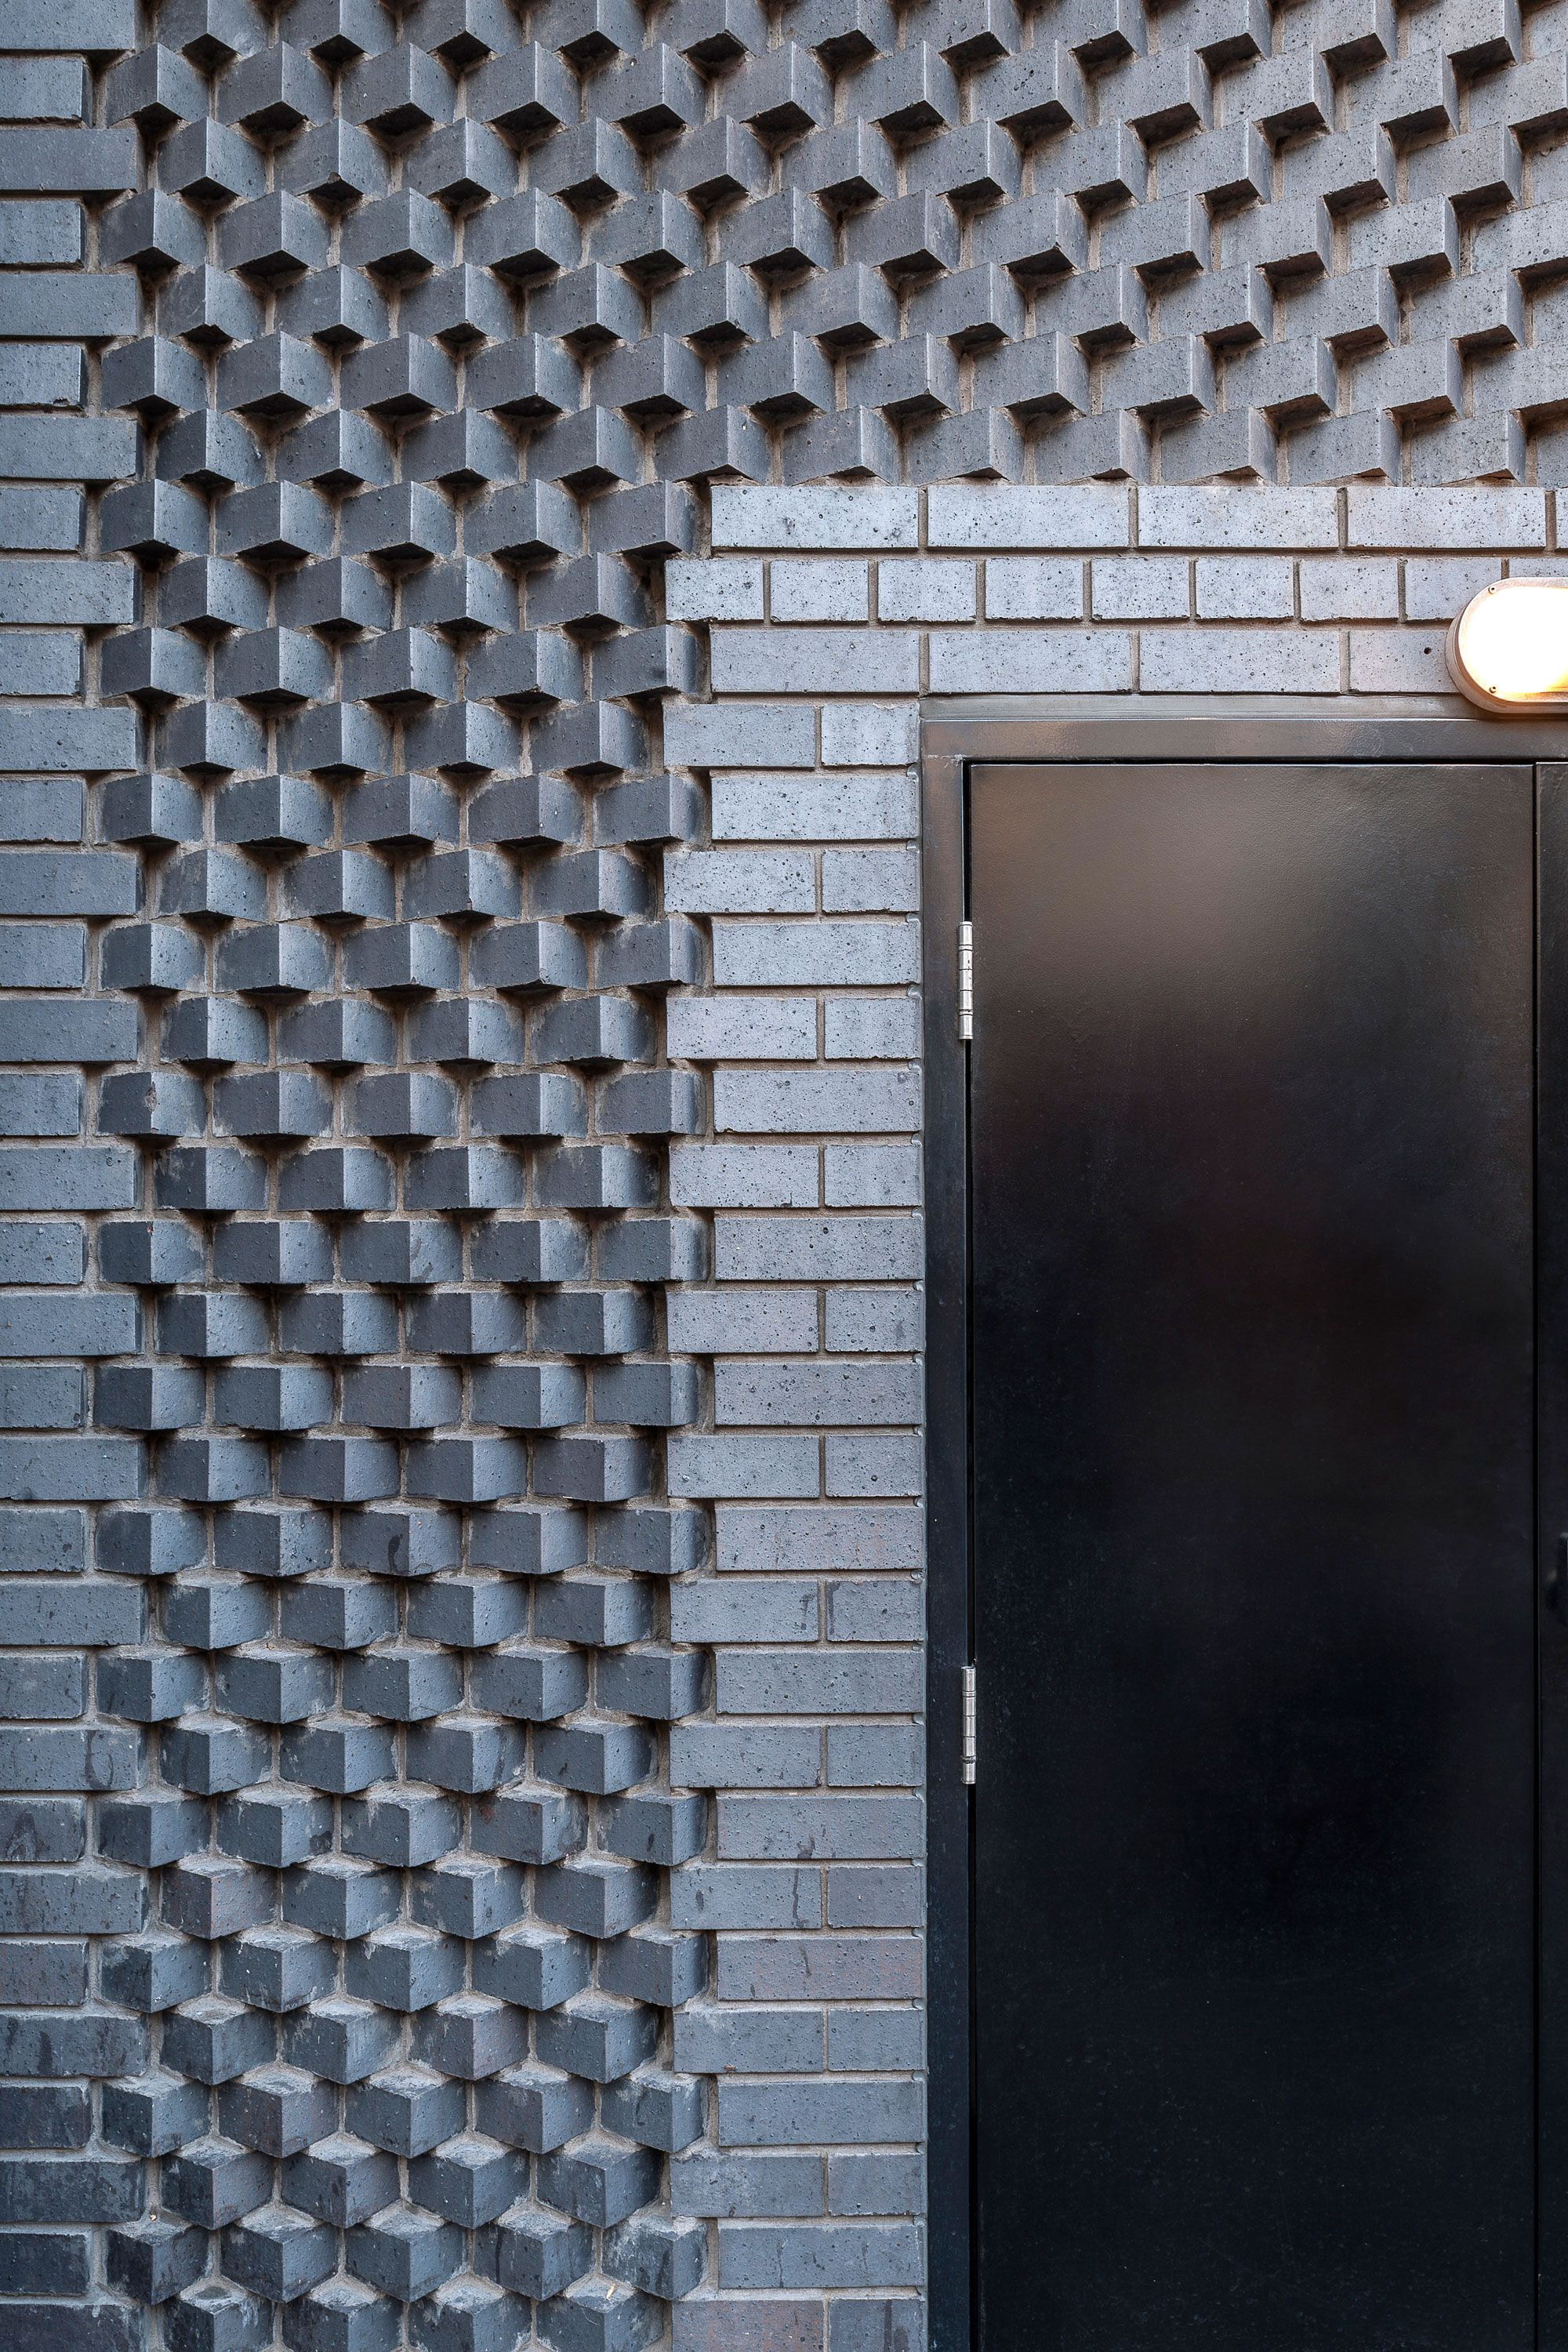 decorative brickwork on the ace hotel in londons shoreditch area england photo by andrew meredith tina hillier via universaldesignstudio - Brick Hotel Decoration